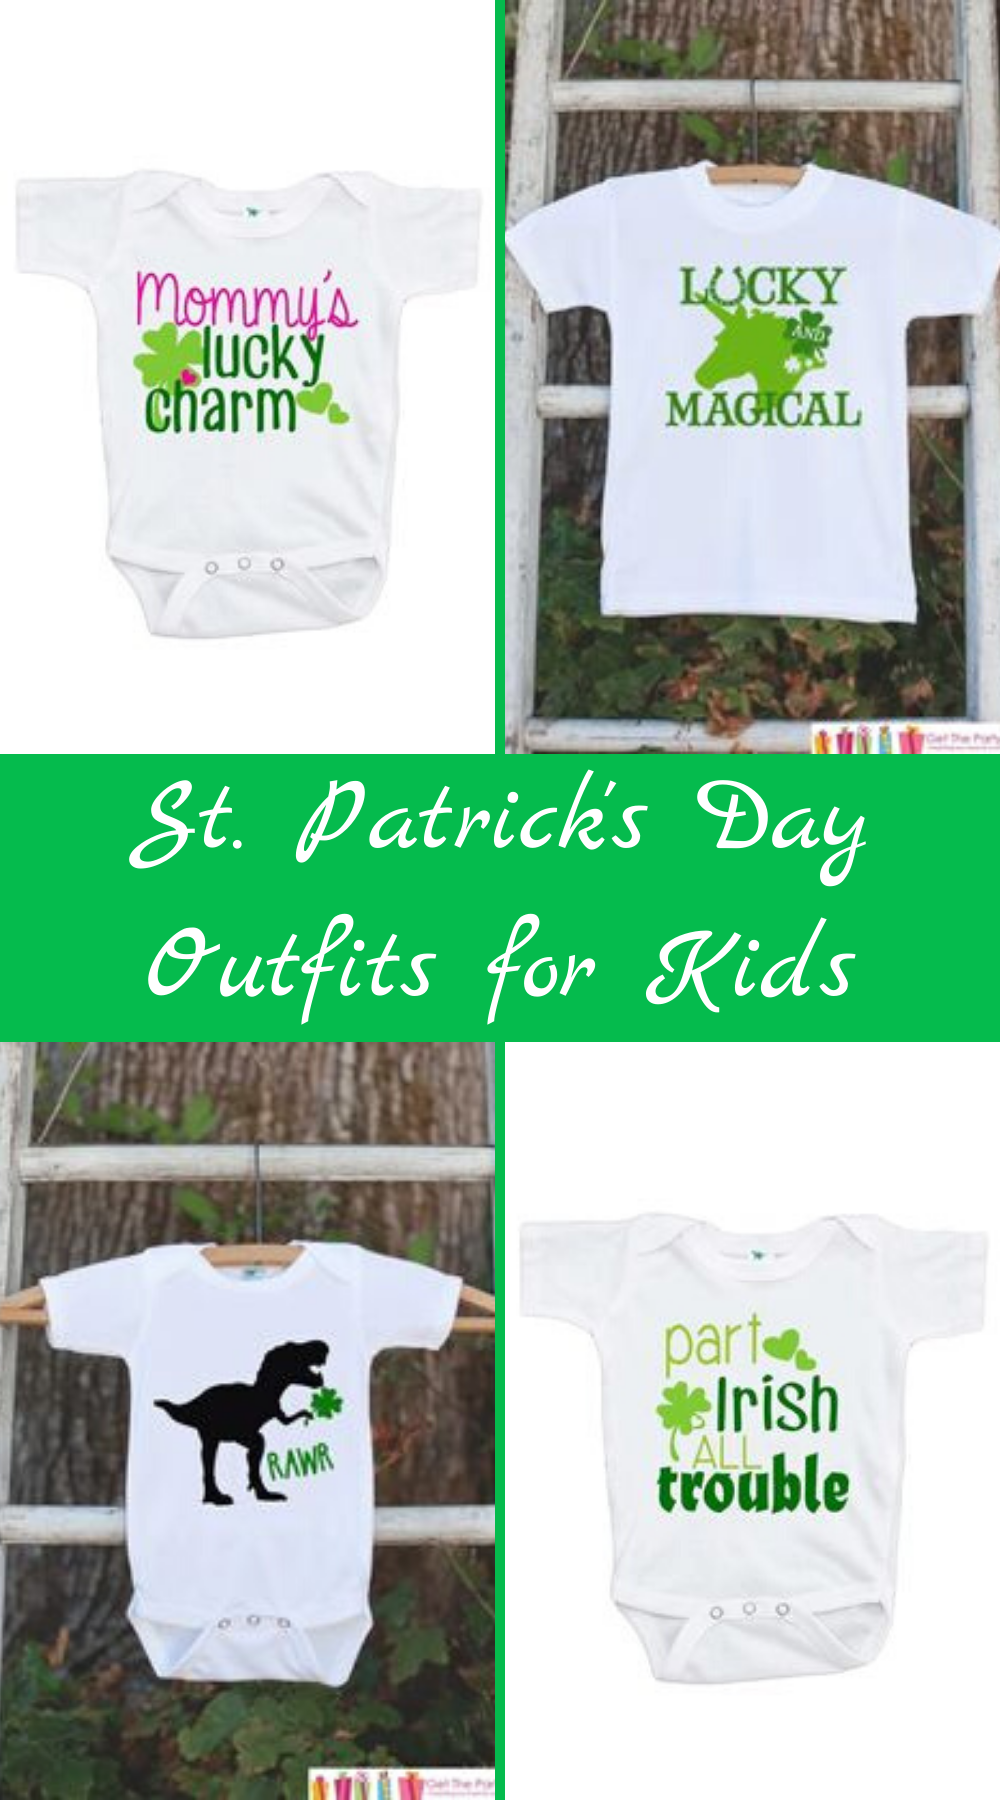 Patricks Day T-Shirt 7 ate 9 Apparel Kids Mommys Lucky Charm St